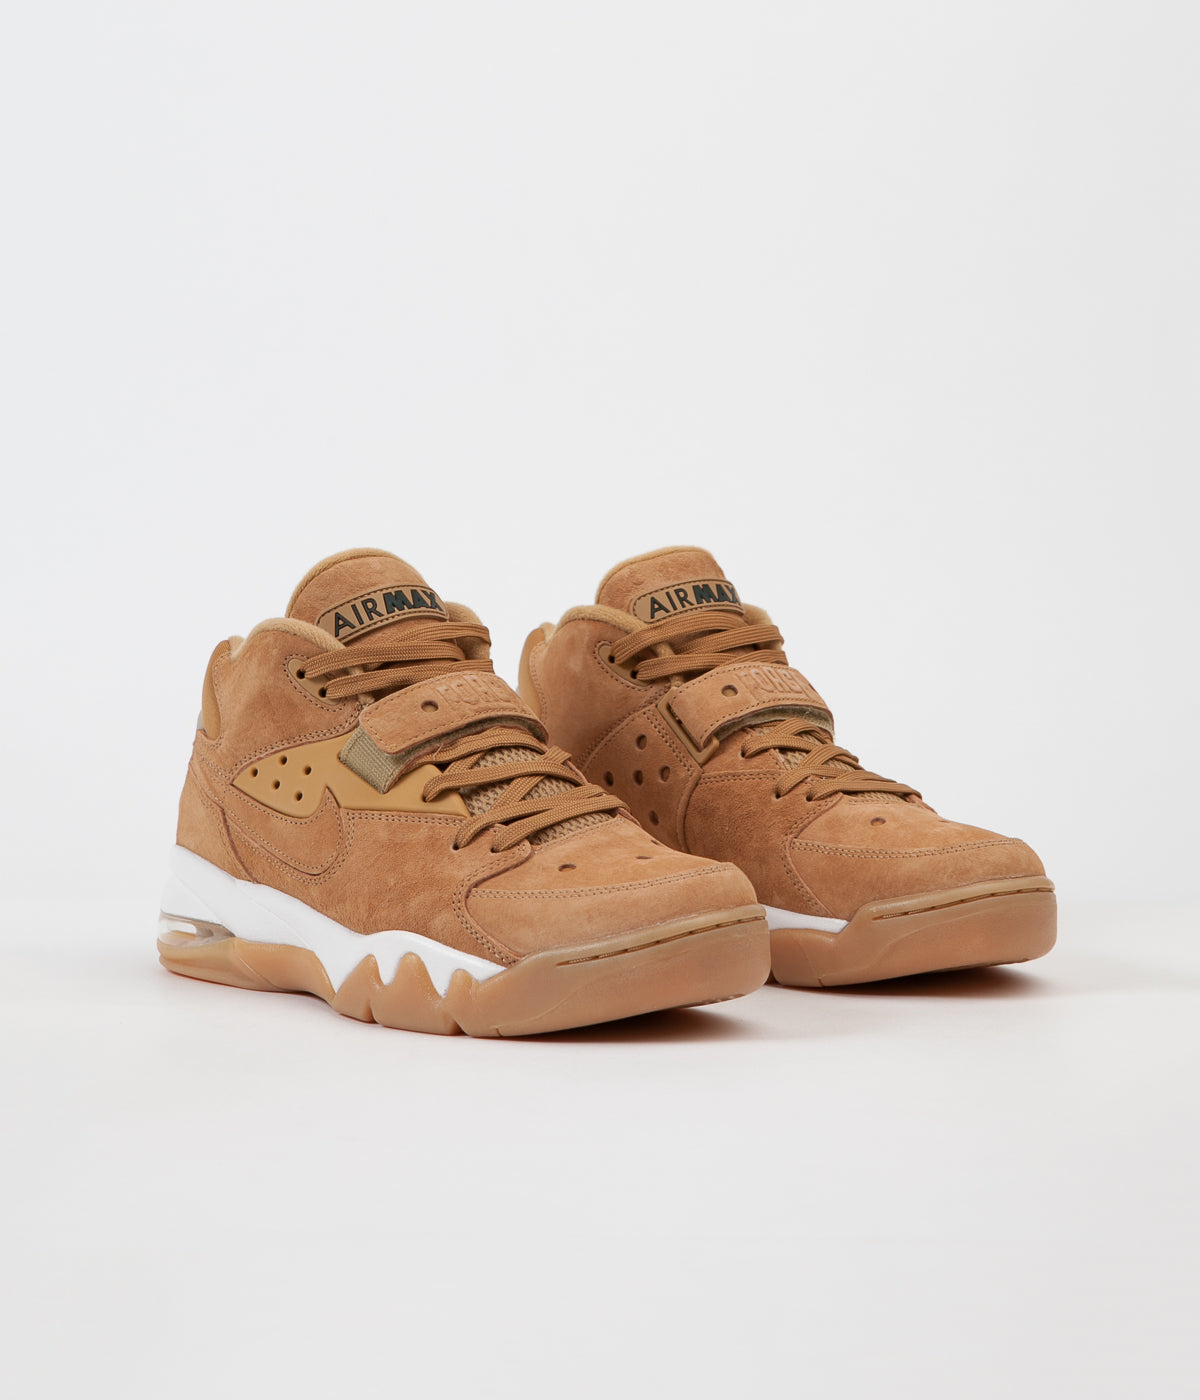 best cheap 28660 e4ac1 ... Nike Air Force Max Premium Shoes - Flax   Flax - Phantom - Gum Light  Brown ...